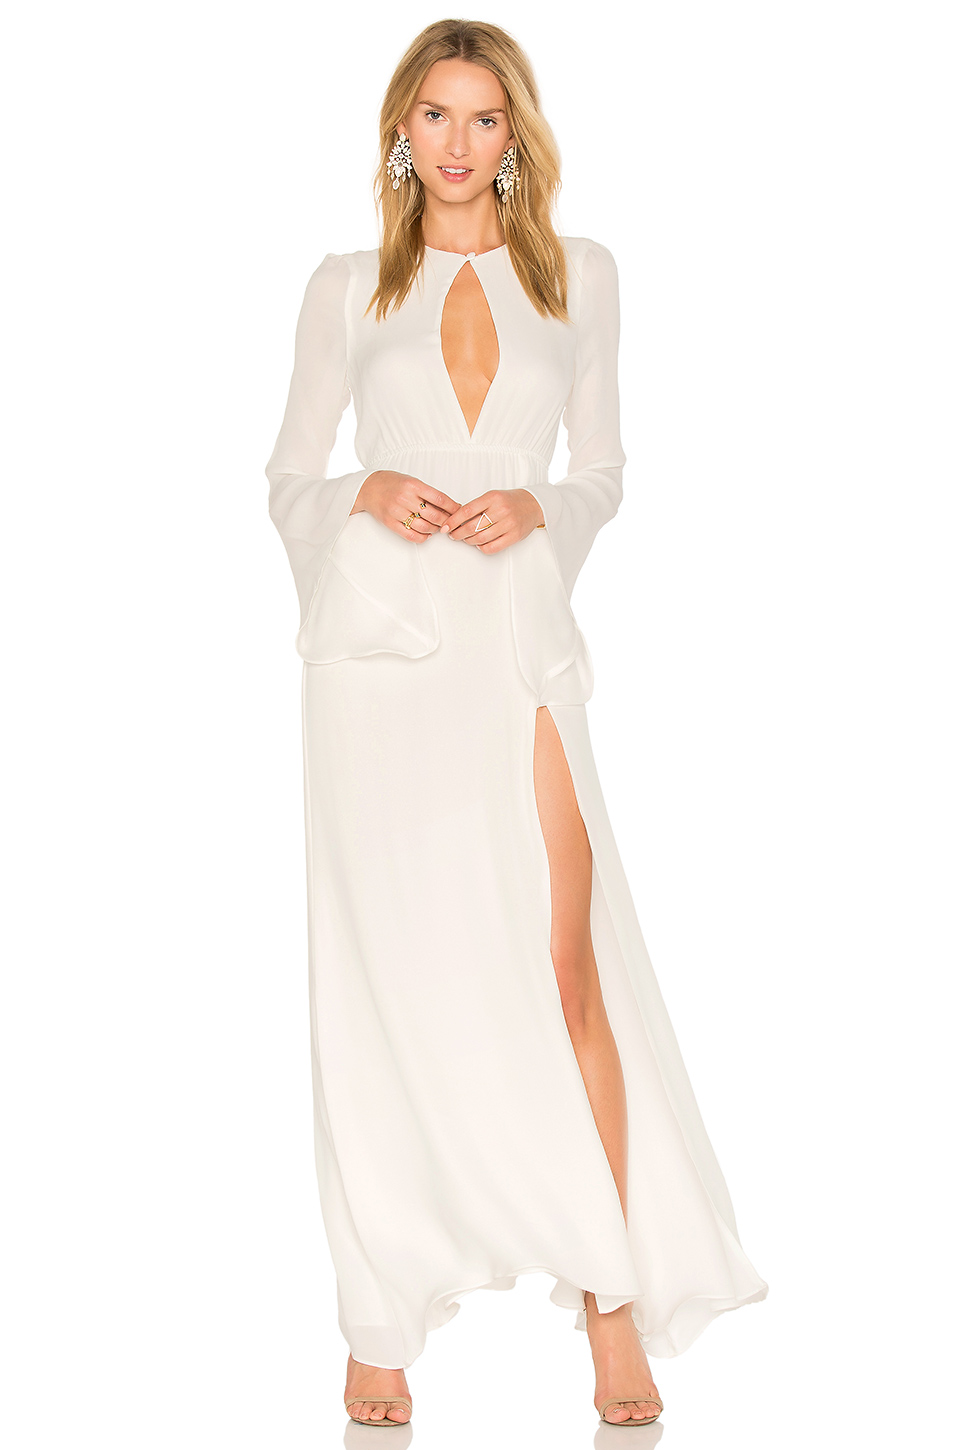 25 Cheap Wedding Dresses That Look Expensive - theFashionSpot